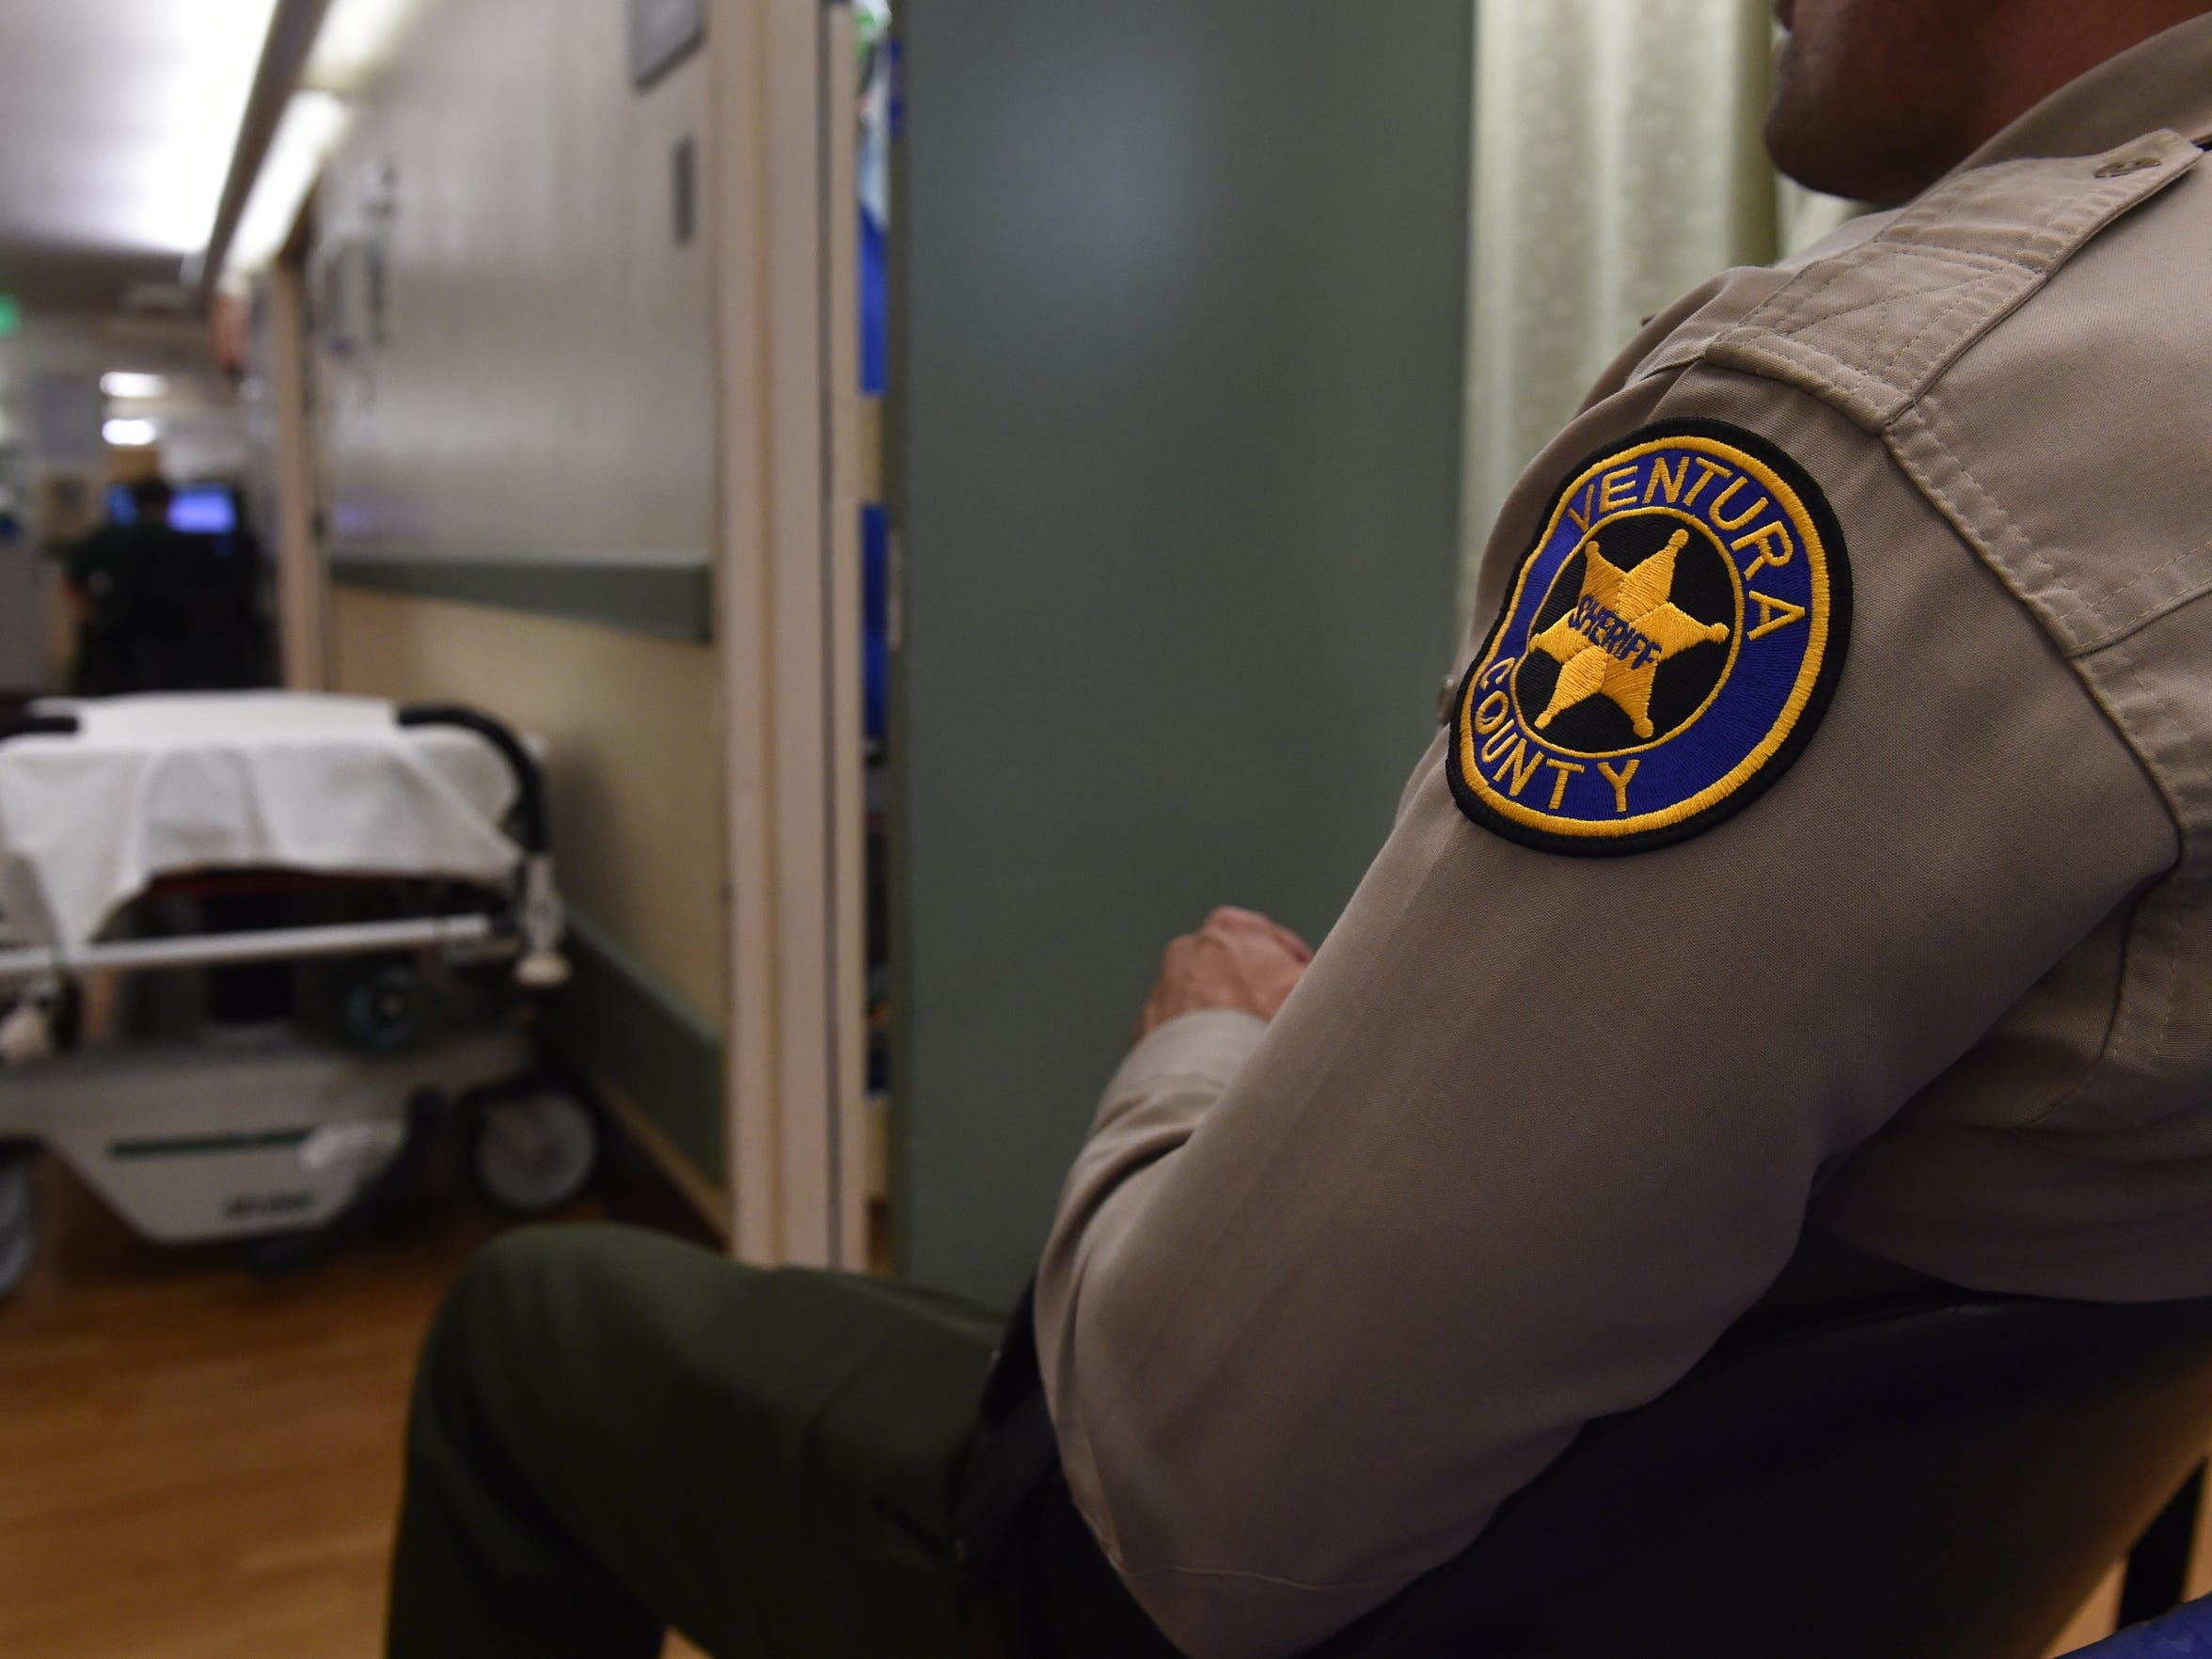 A Ventura County Sheriff's Office deputy watches over